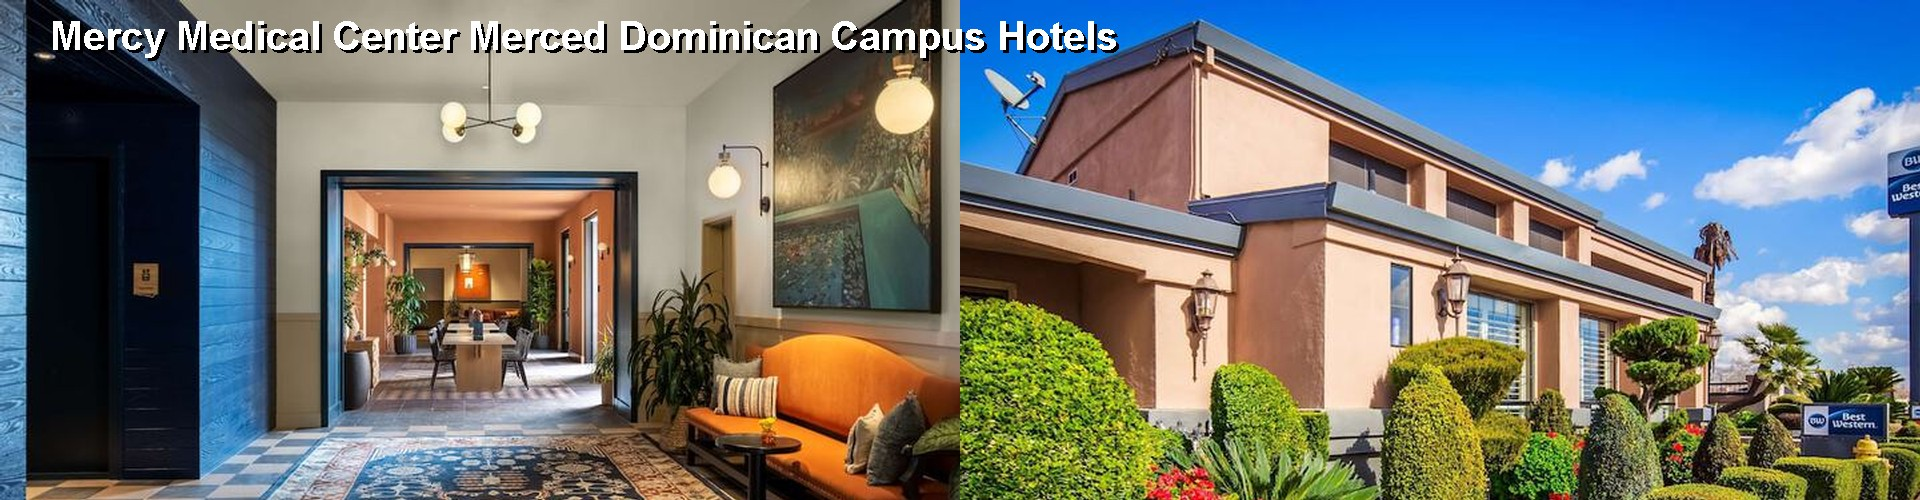 4 Best Hotels near Mercy Medical Center Merced Dominican Campus